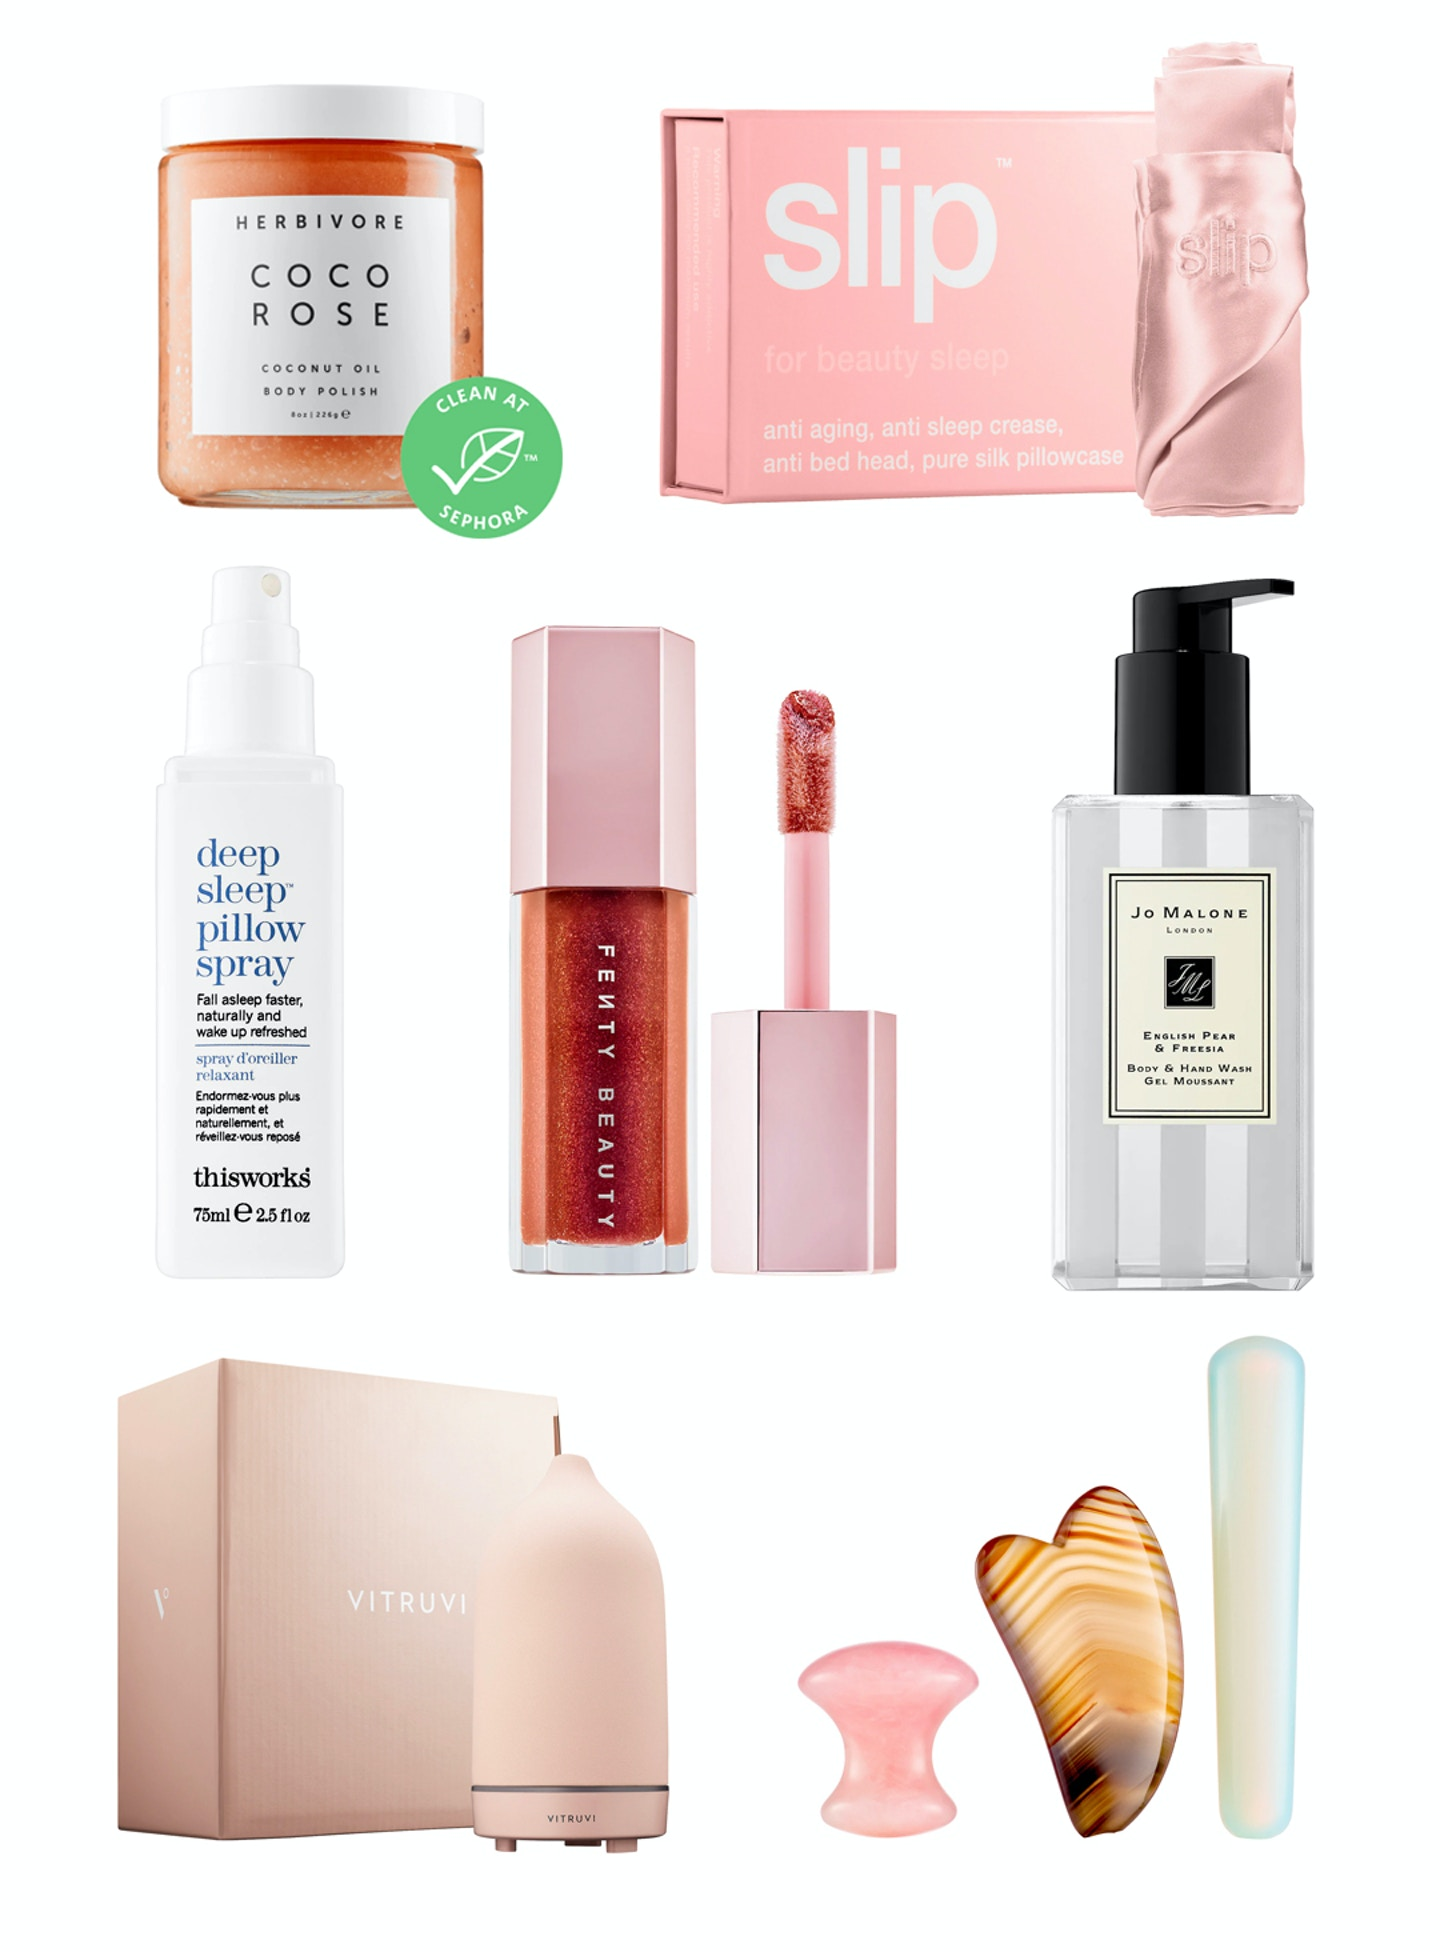 Sephora VIB Sale - Self Care Items: From sleep spray to face masks, the Sephora VIB Sale has the best, luxurious self care items!